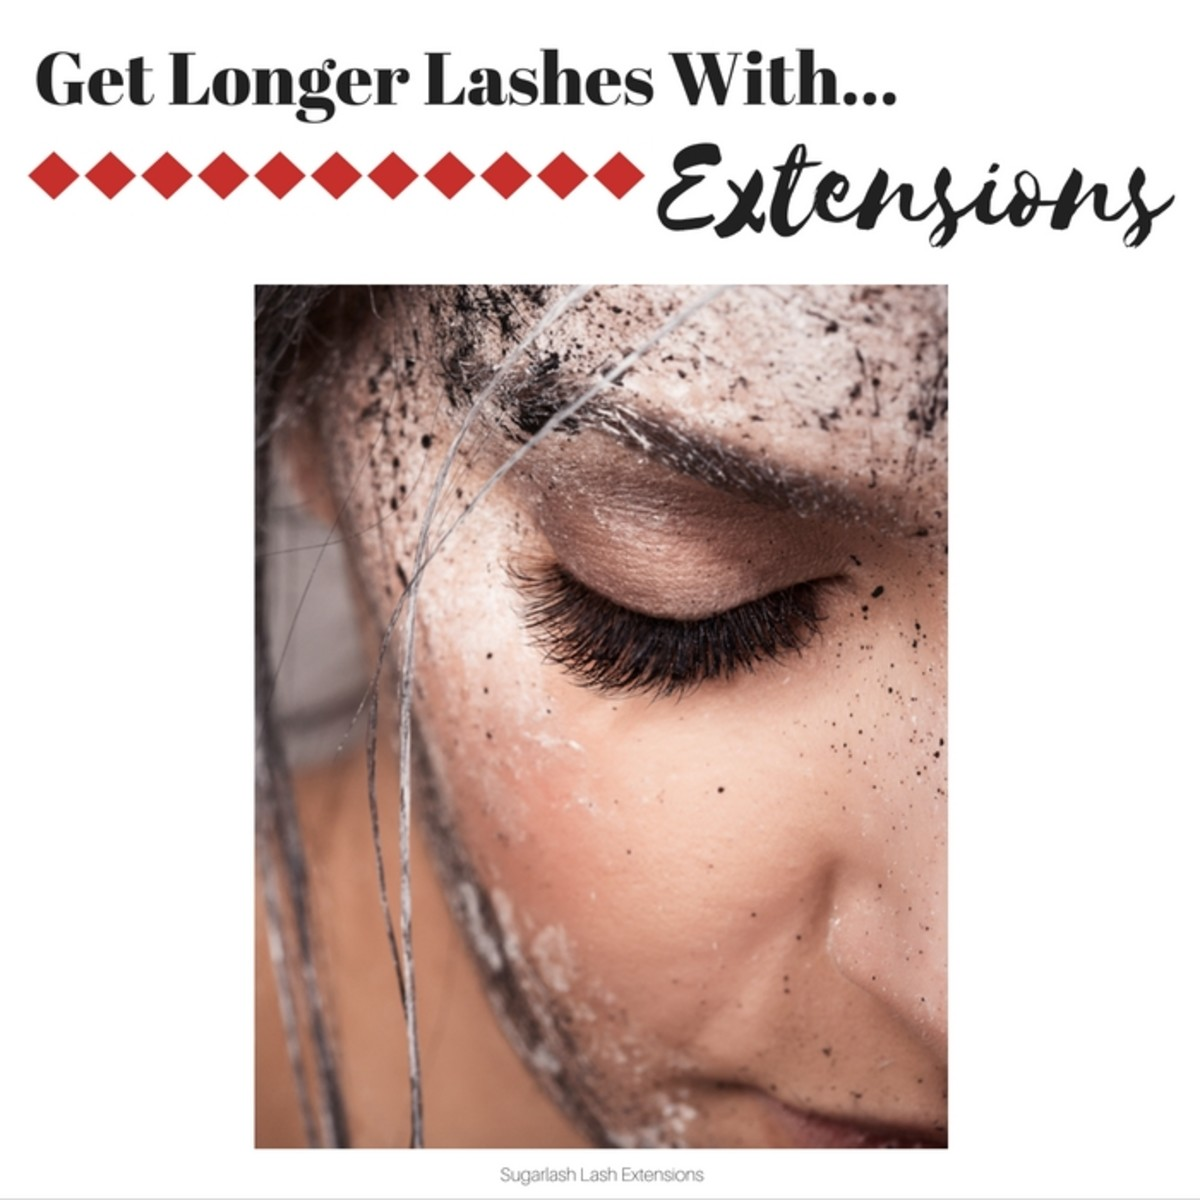 Get Longer Lashes with Extensions